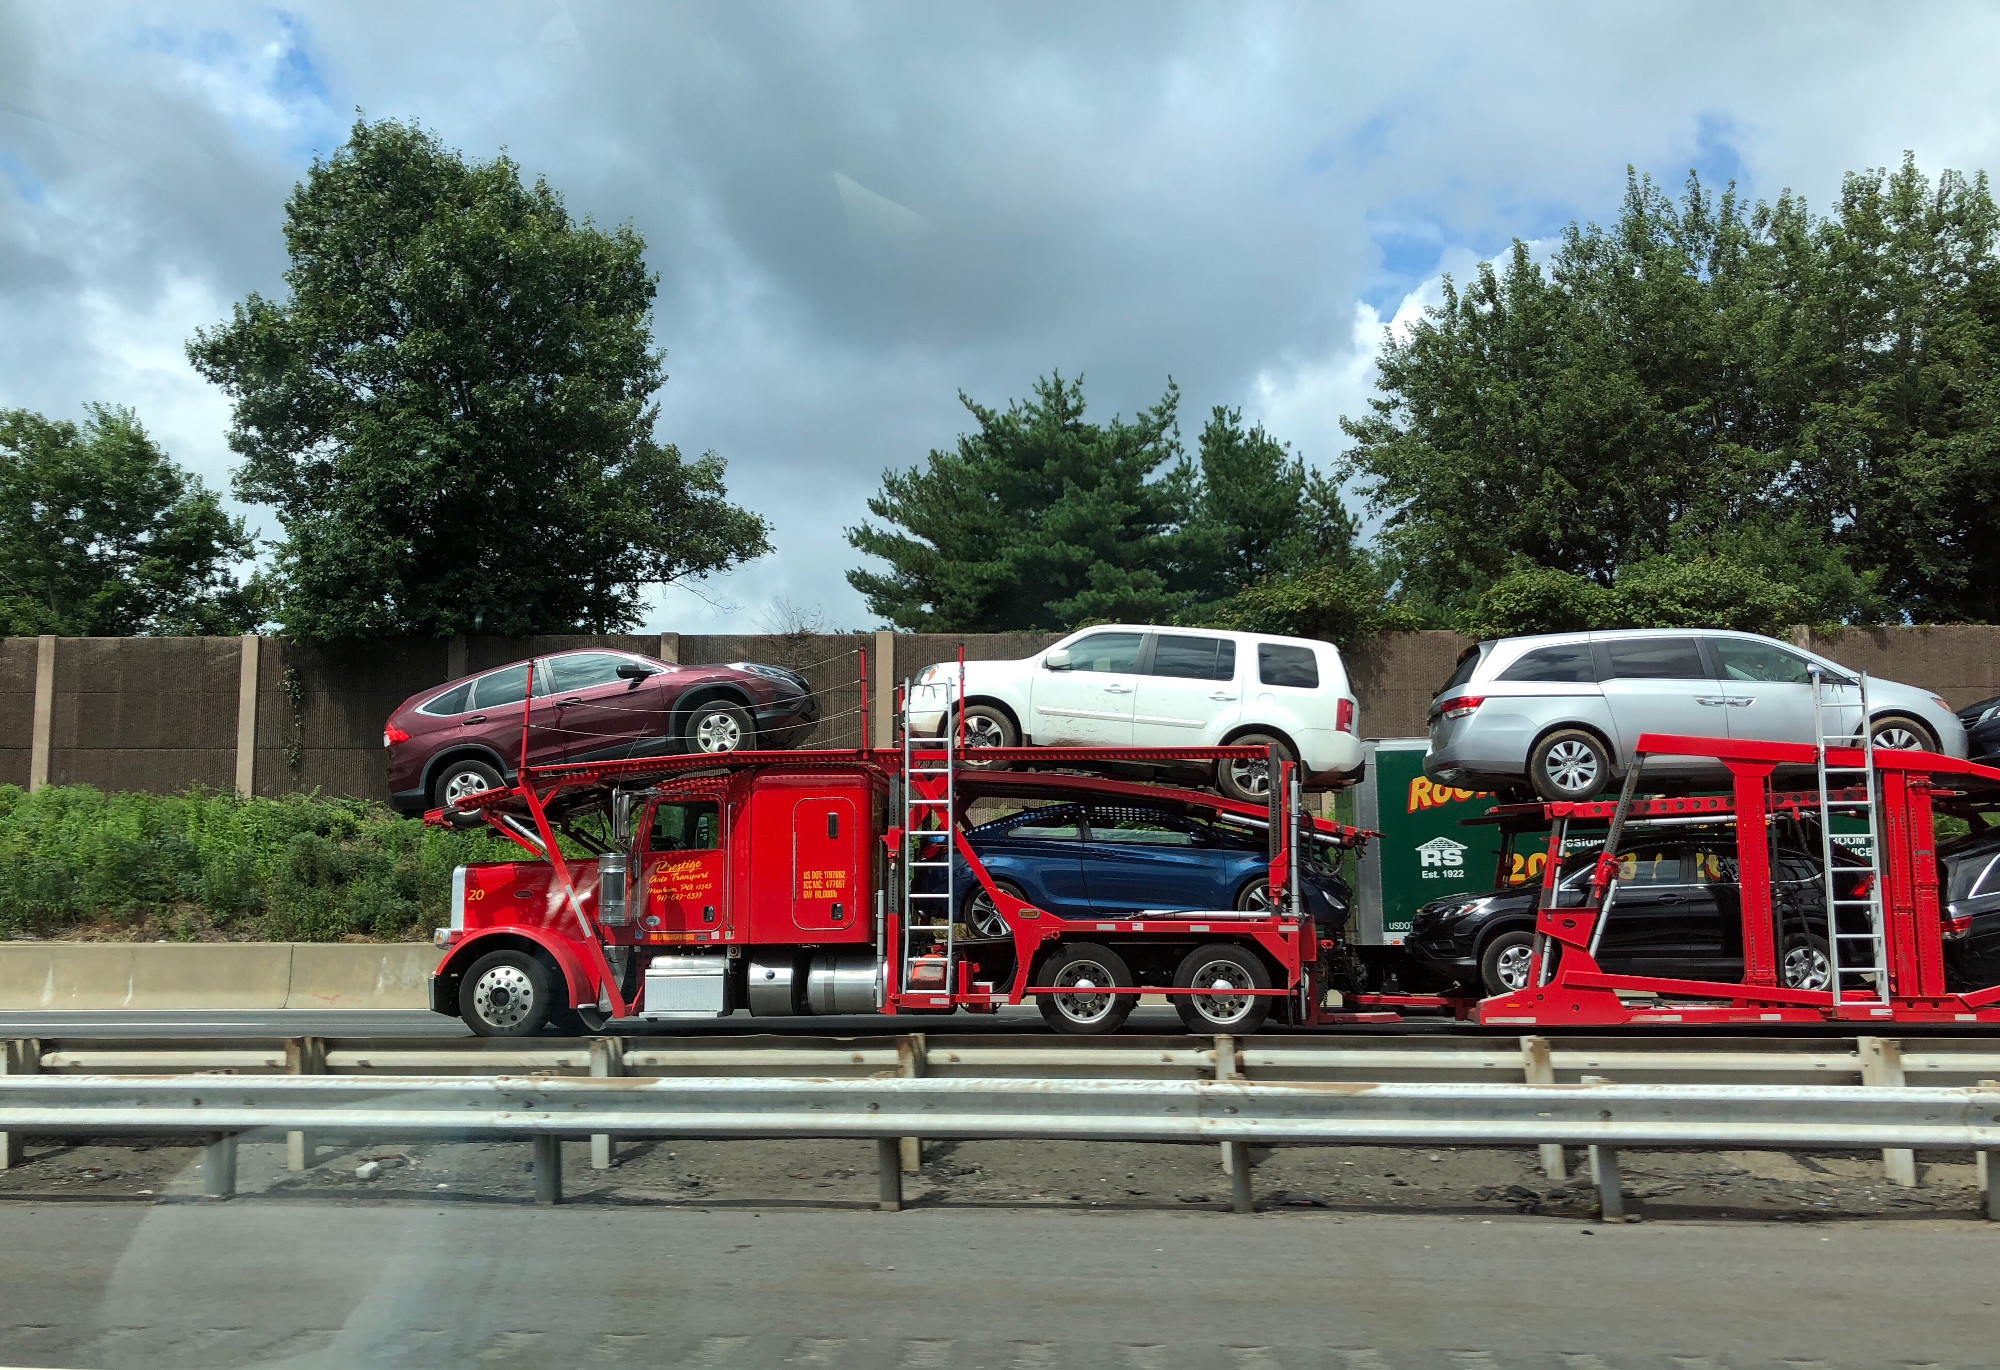 a-car-carrier-trailer-known-variously-as-a-car-carrying-trailer-car-hauler-auto-transport-trailer-